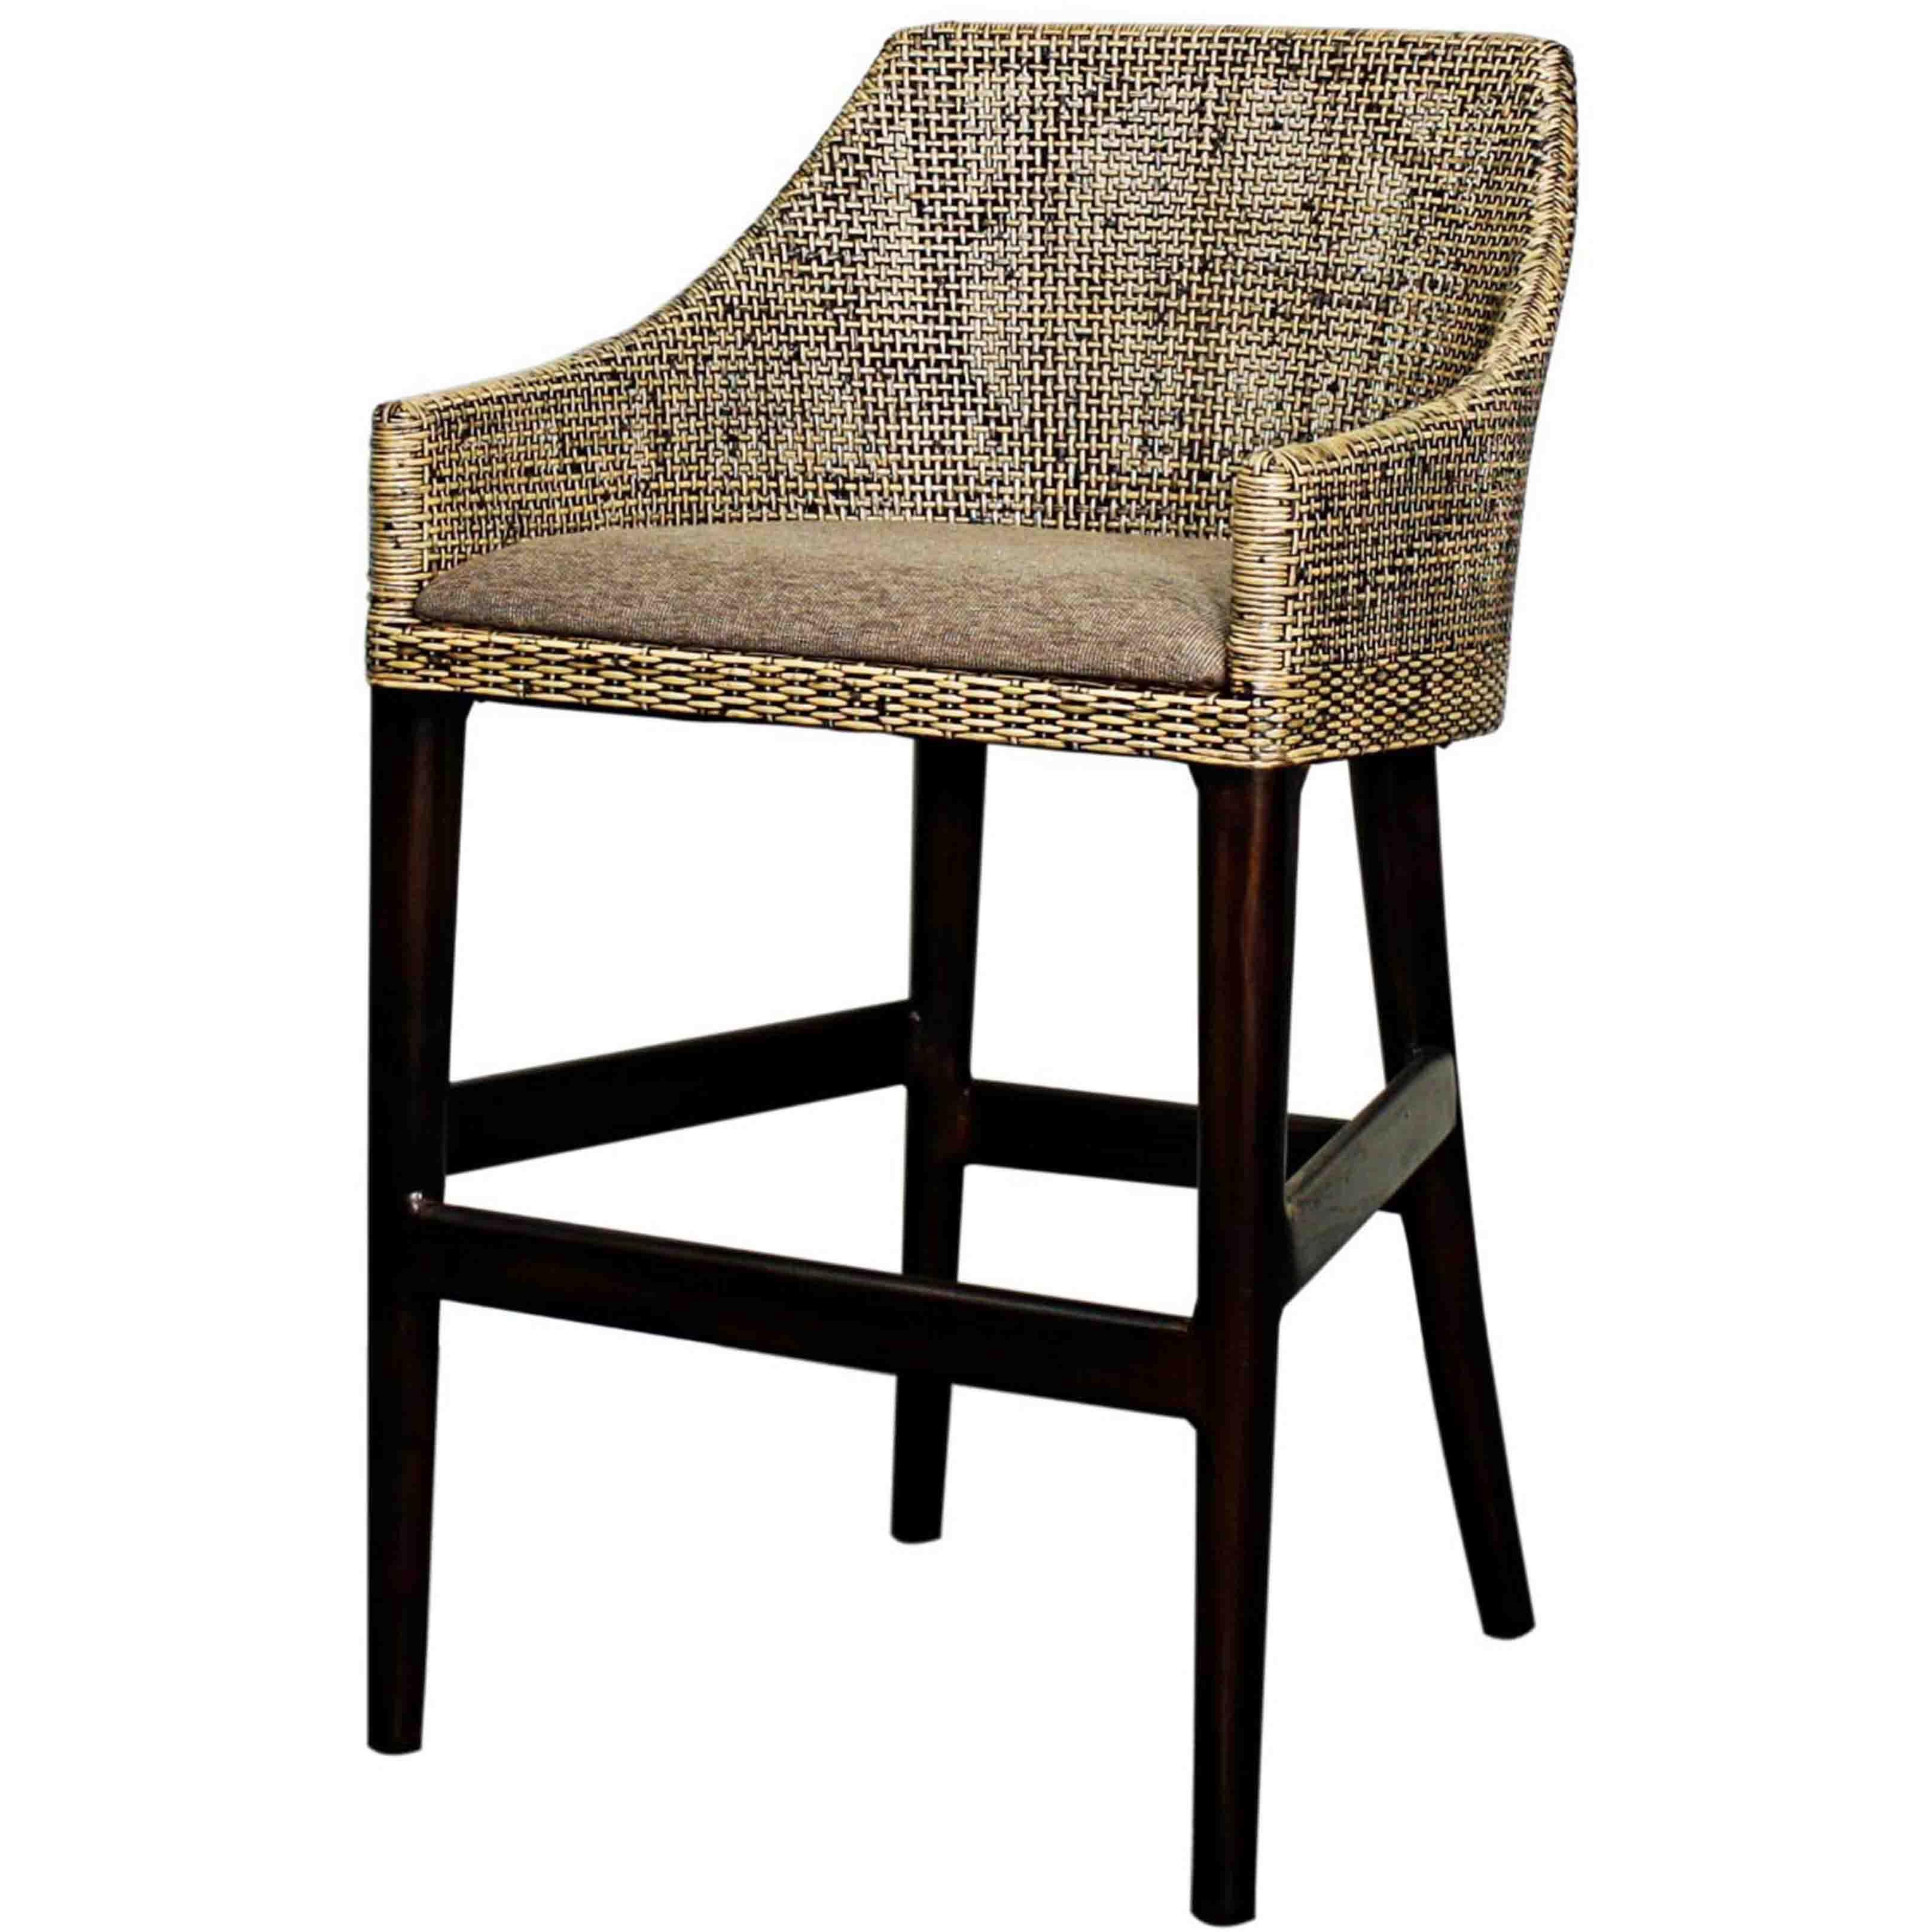 saddle inch high kitchen bar woven stool and with wooden backs wicker table height seat ace pier chairs one stools rattan counter back most fabric low